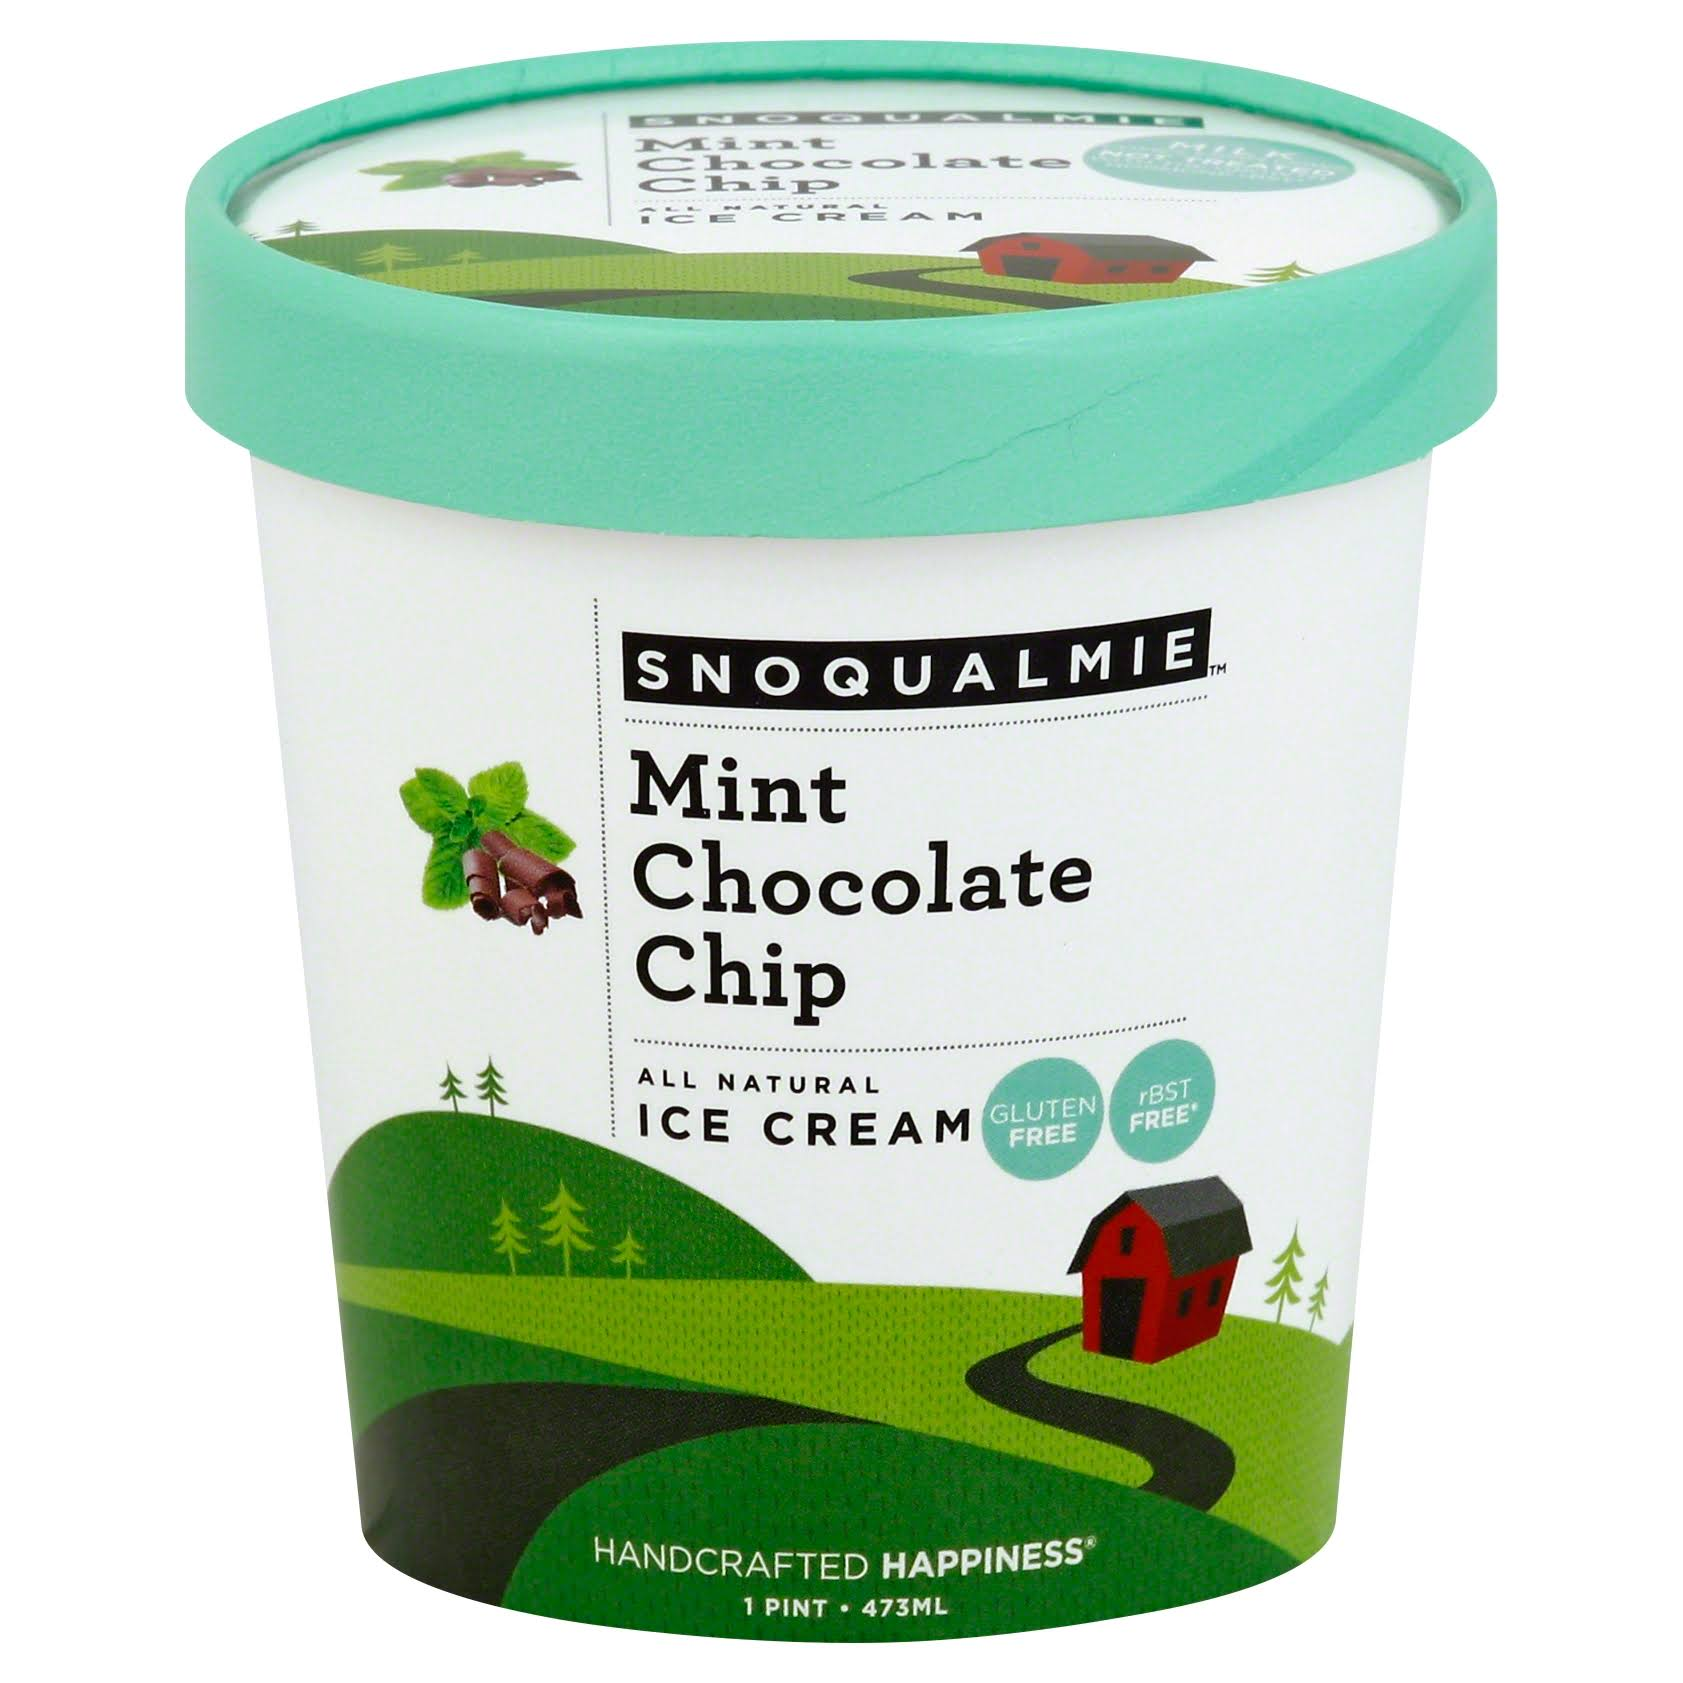 Snoqualmie Ice Cream - Mint Chocolate Chip, 1 Pint